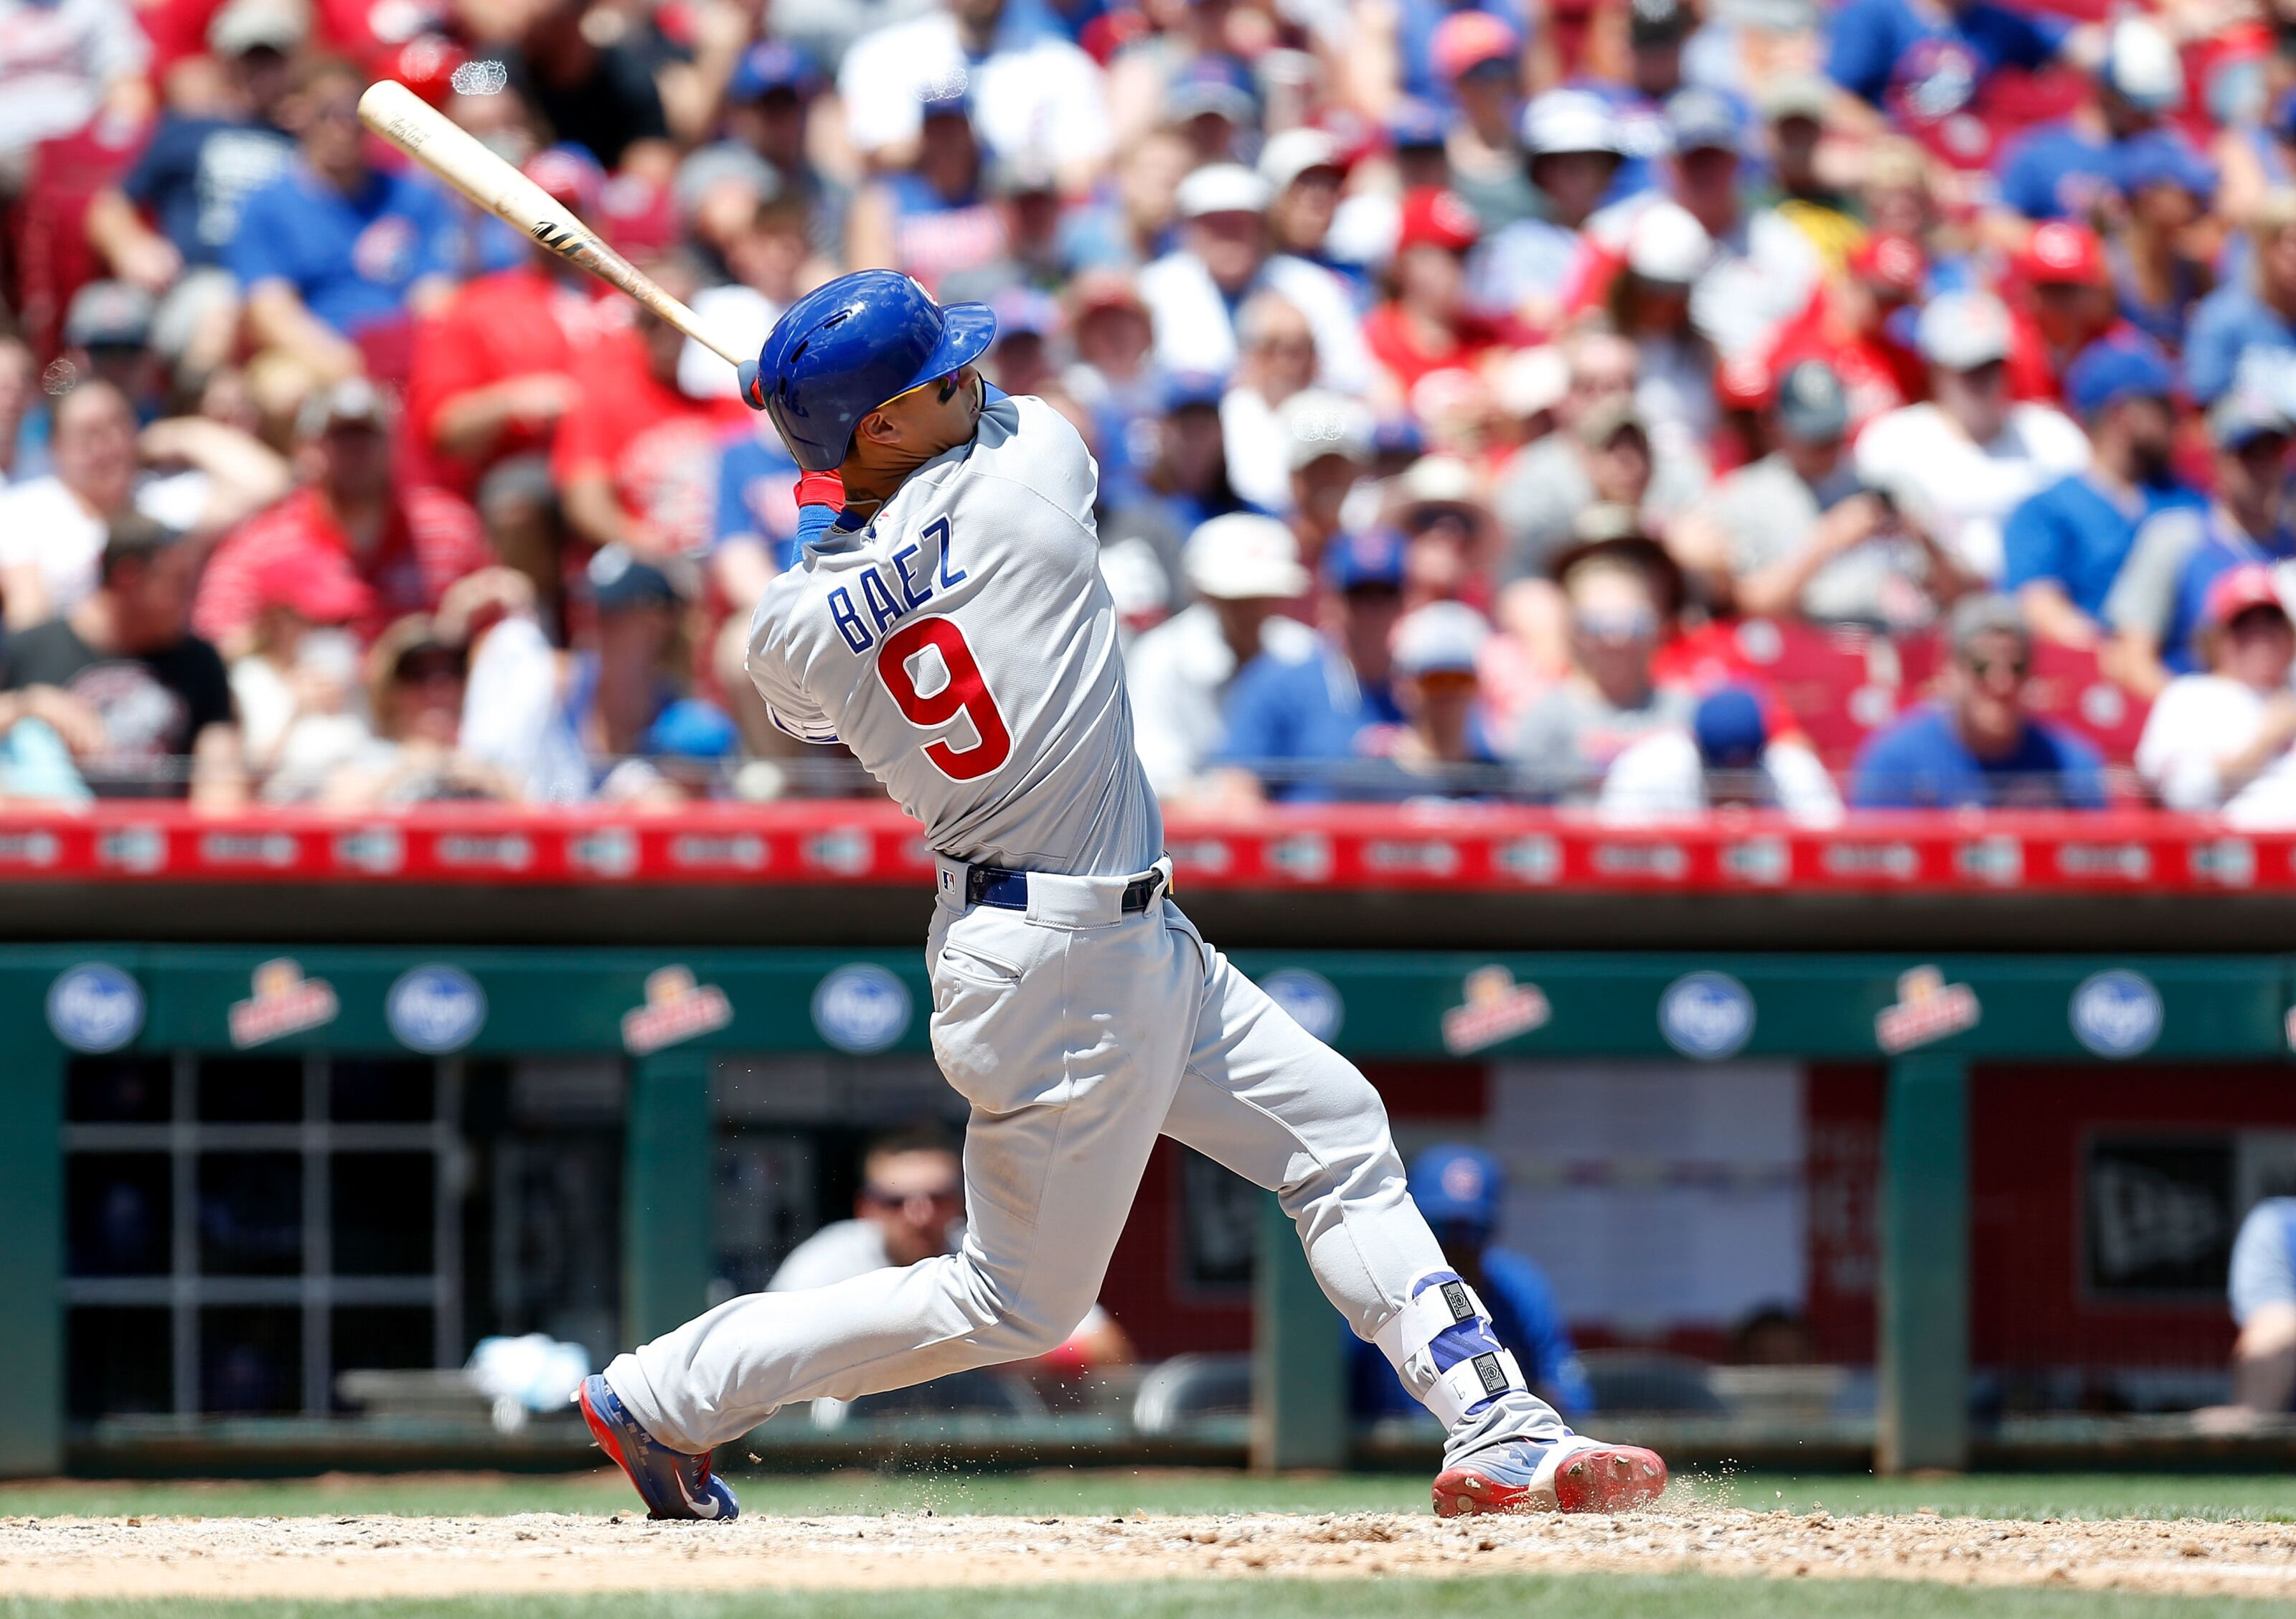 f66118059a8 ... Thank the baseball gods for Javier Báez in the the Home Run Derby ...